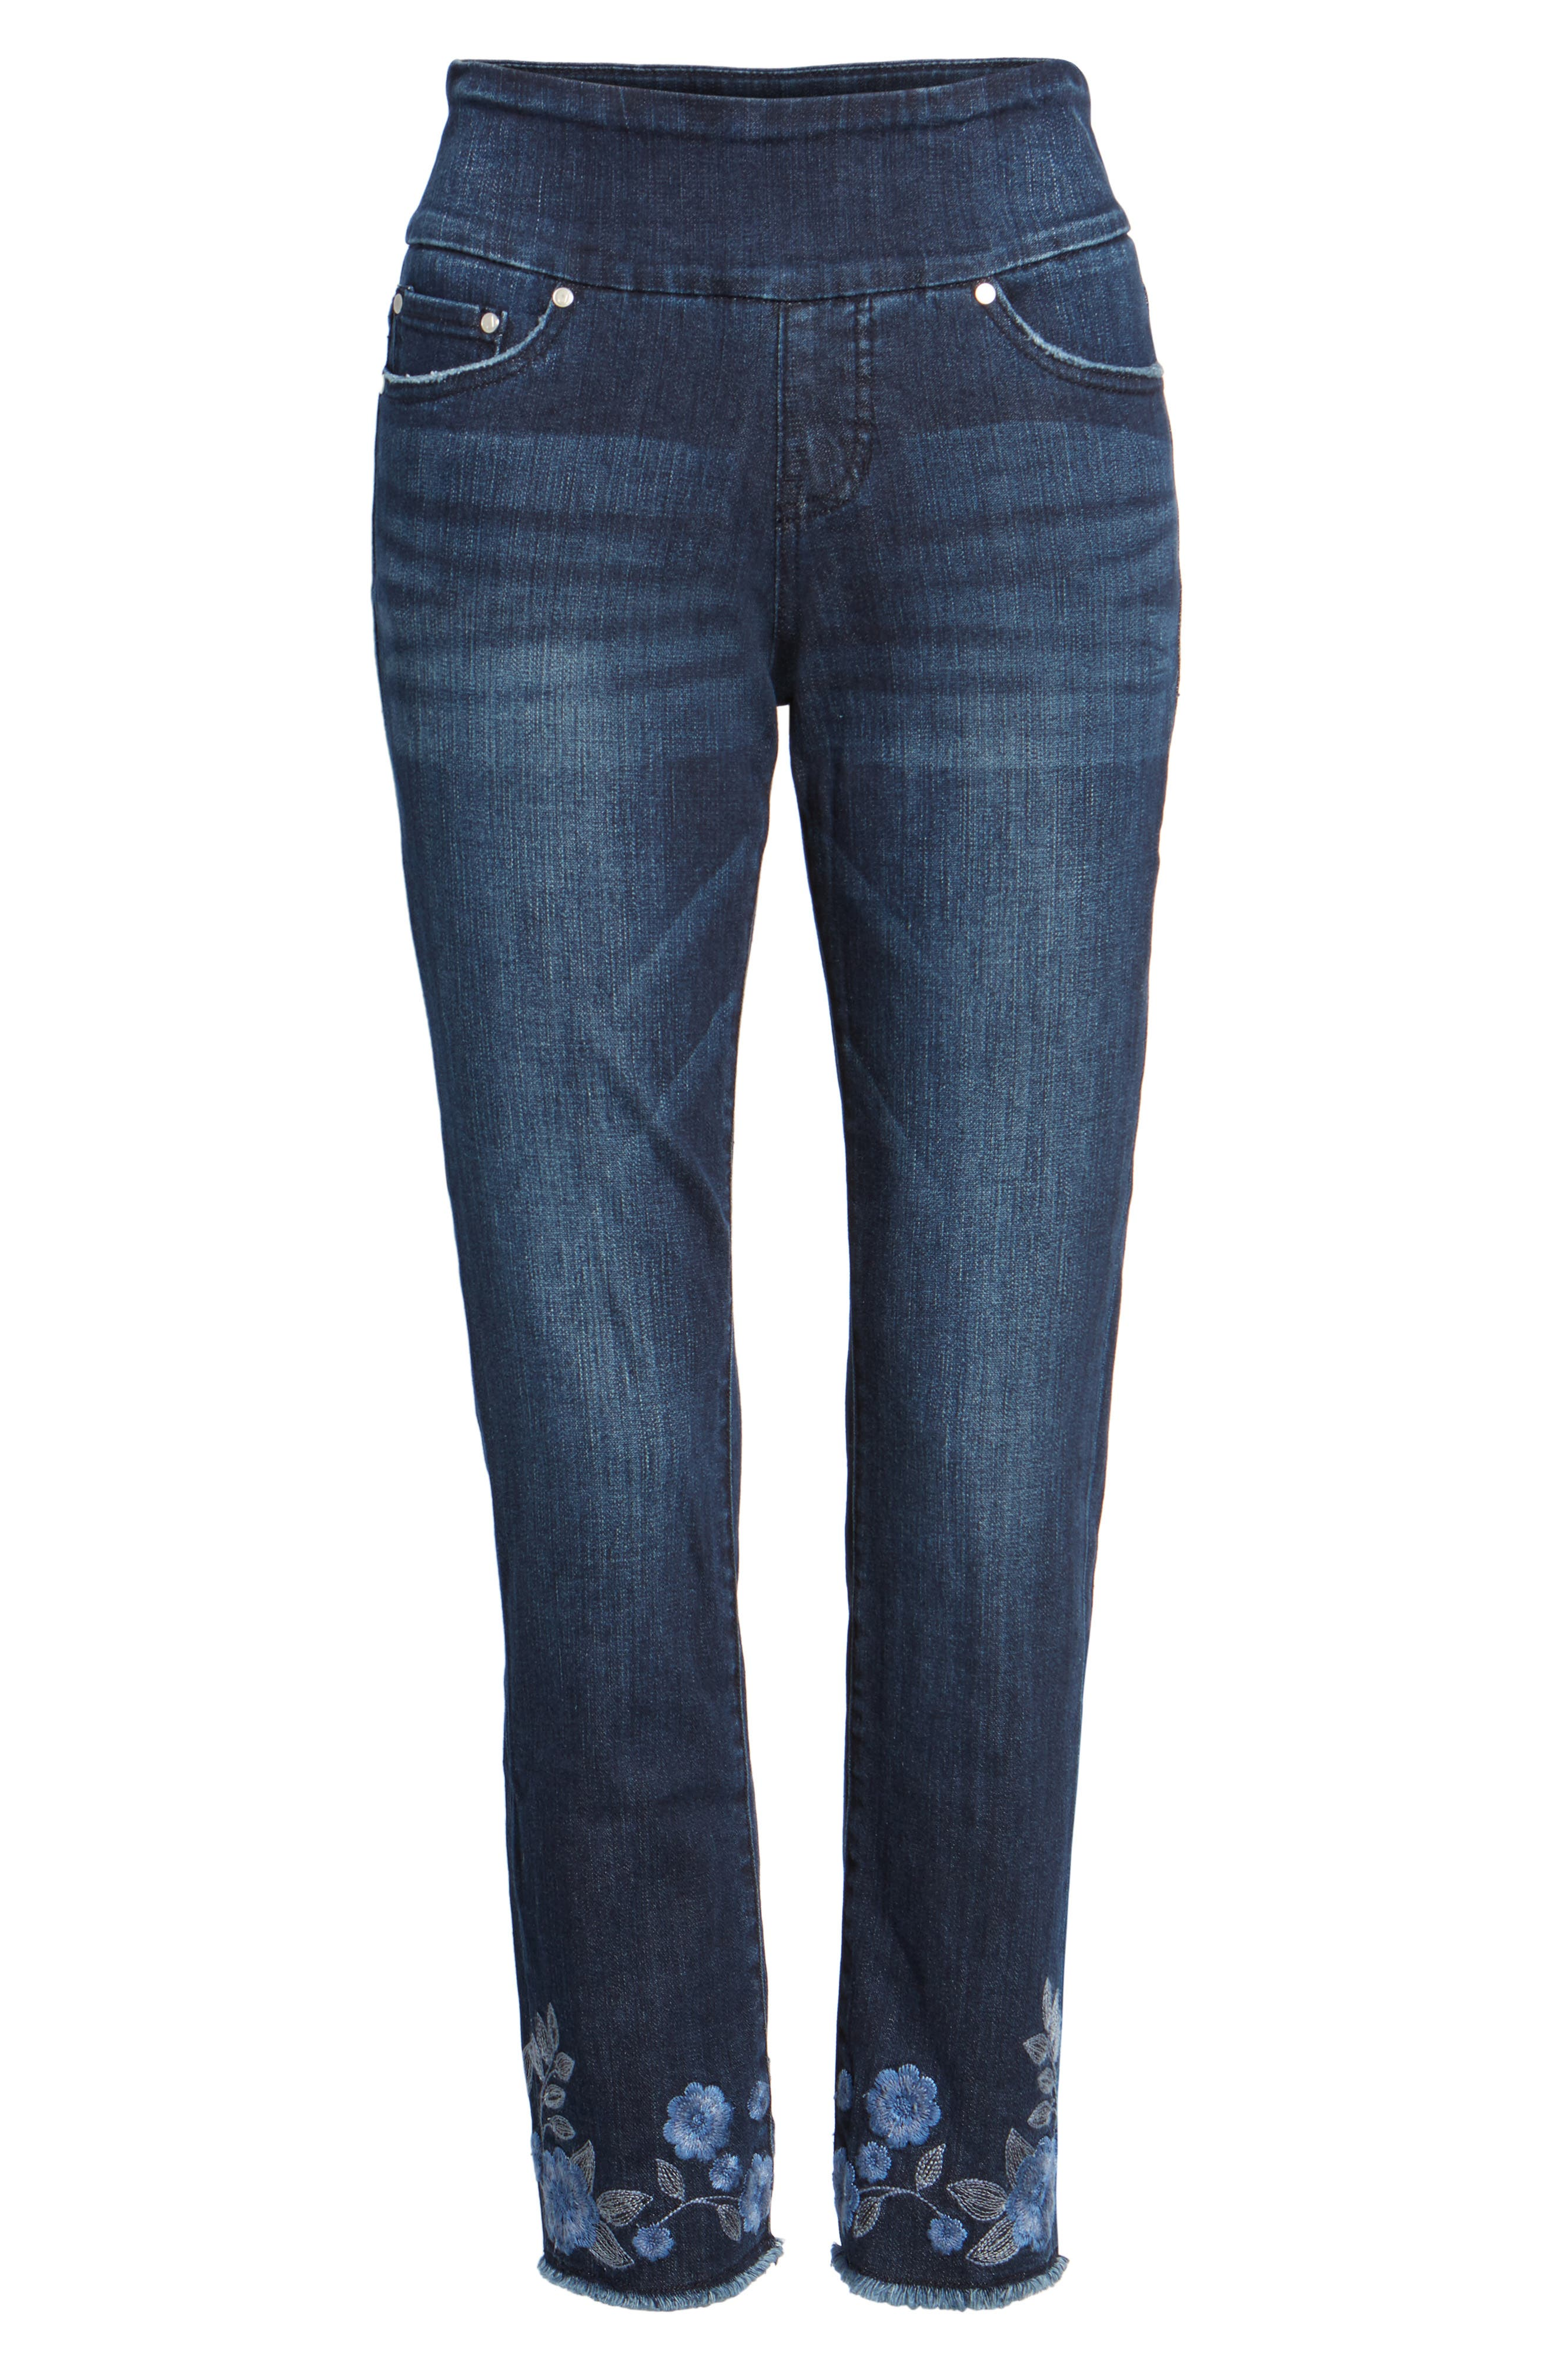 Amelia Embroidered Slim Ankle Jeans,                             Alternate thumbnail 6, color,                             402